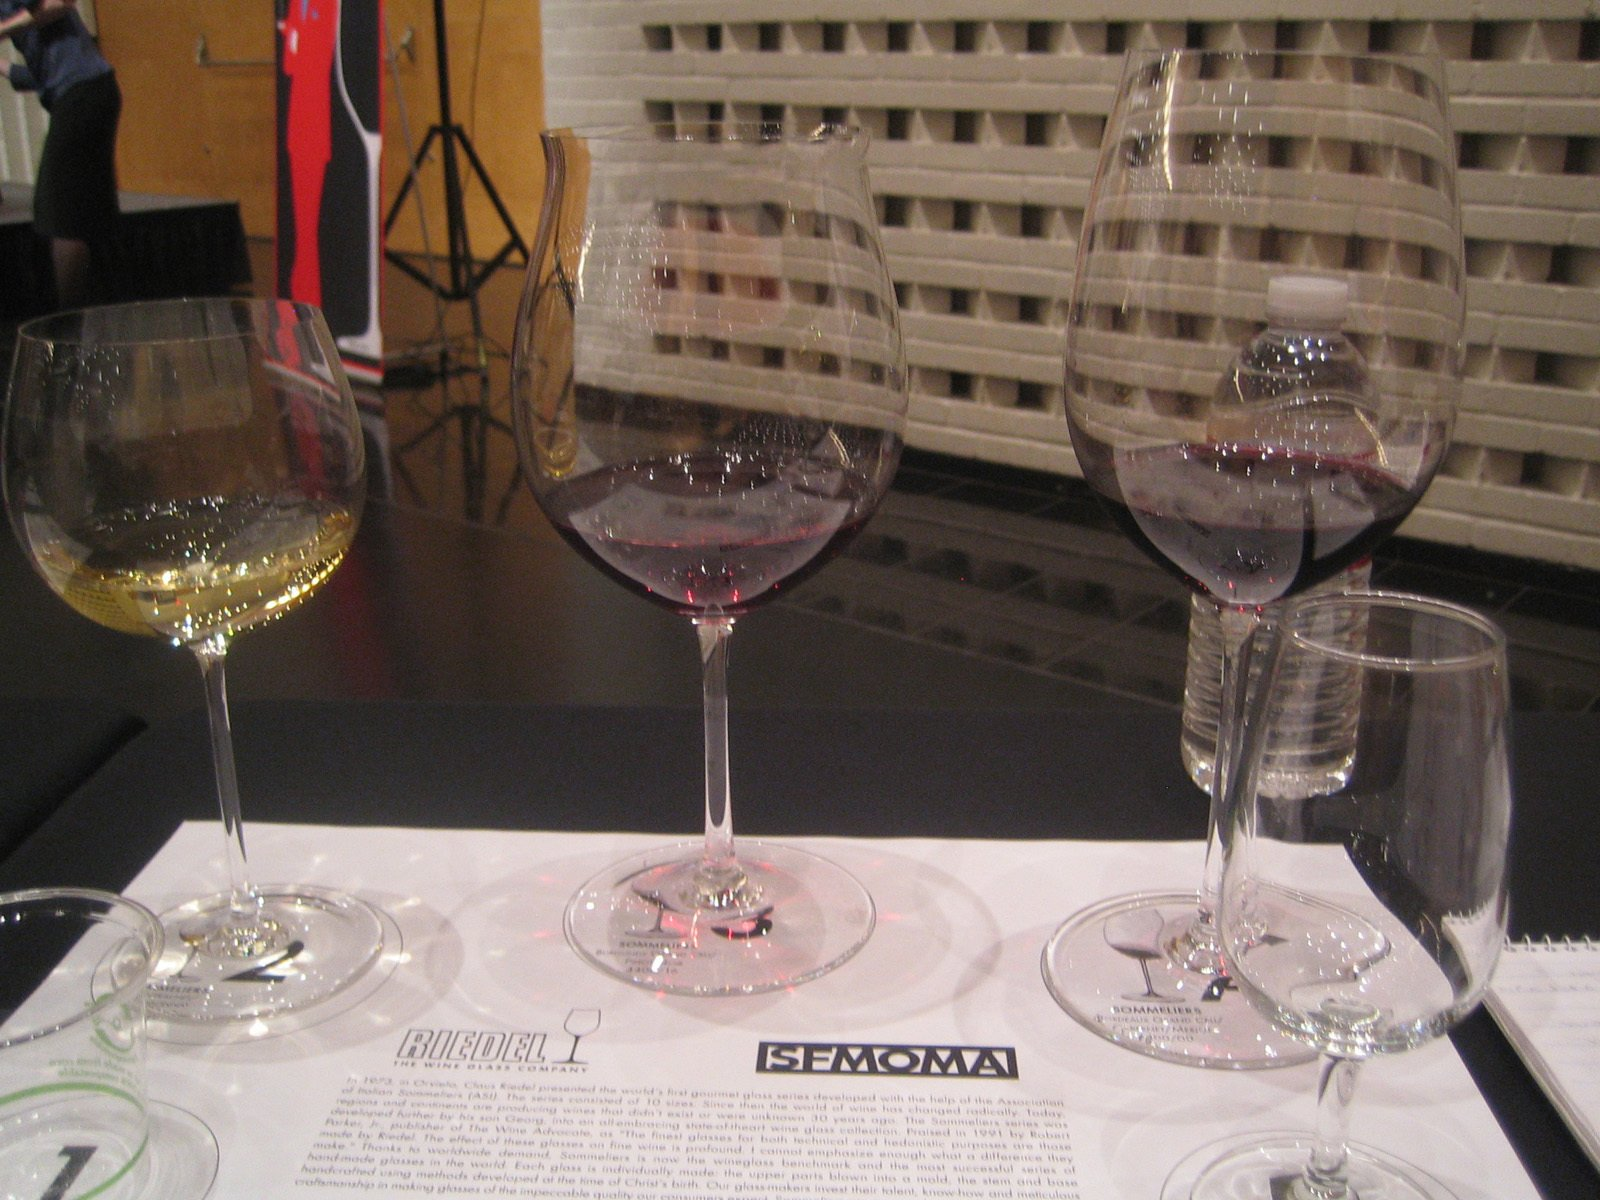 The stars of the show: (from left) Montrachet, Grand Cru Burgundy, Grand Cru Bordeaux.  Photo 5 of 5 in Wine Tasting with Georg Riedel